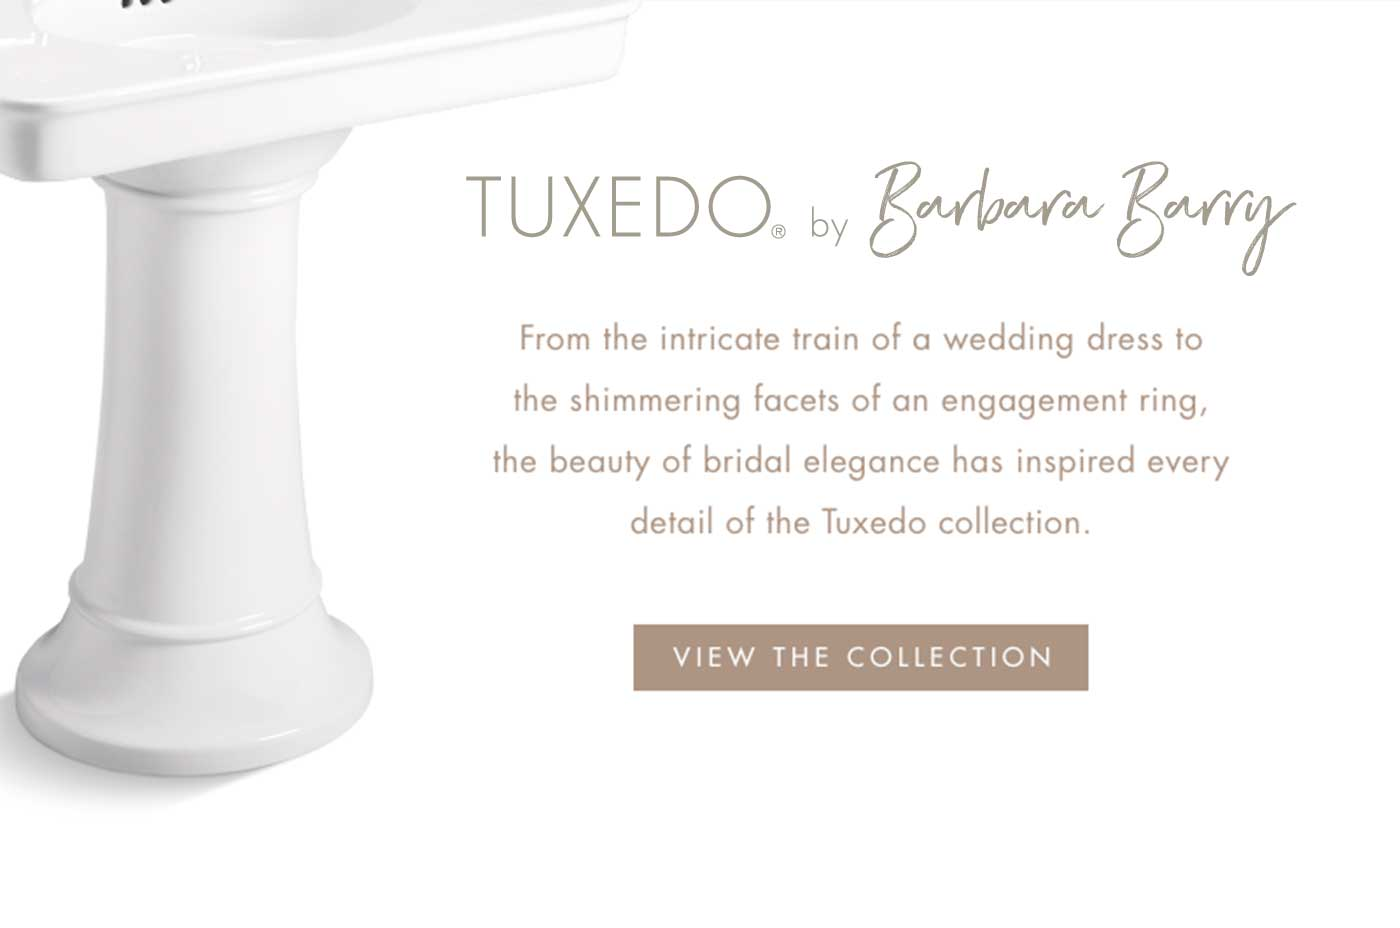 TUXEDO® by Barbara Barry | From the intricate train of a wedding dress to the shimmering facets of an engagement ring, the beauty of bridal elegance has inspired every detail of the Tuxedo collection. | VIEW THE COLLECTION